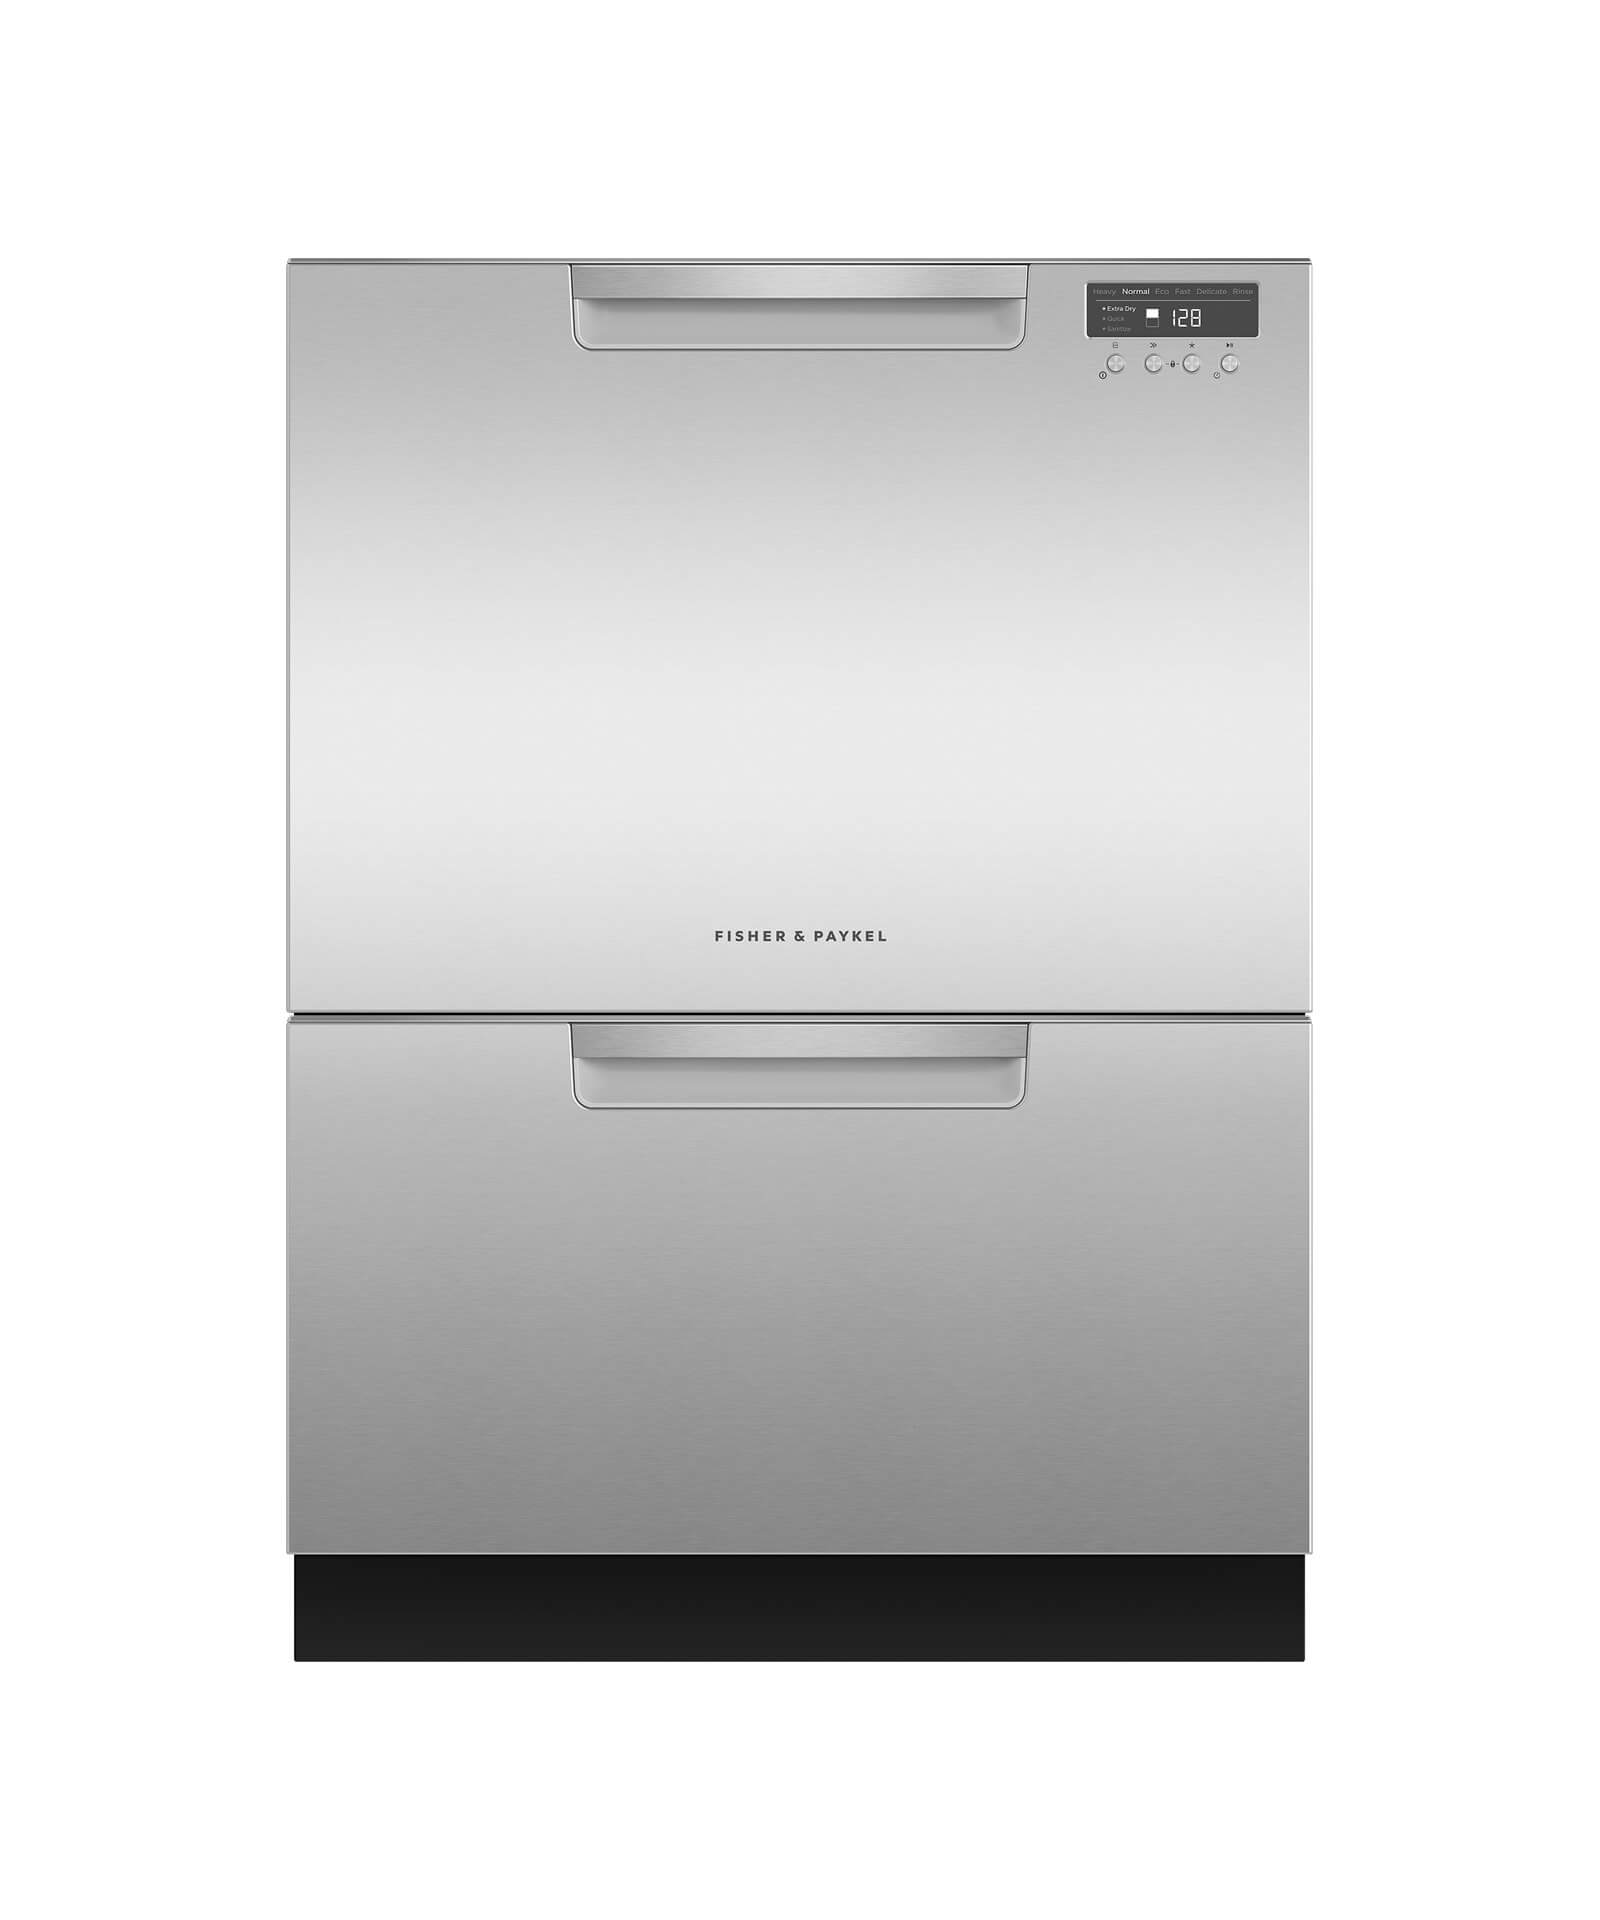 Double DishDrawer™, 14 Place Settings, Water Softener (Tall)